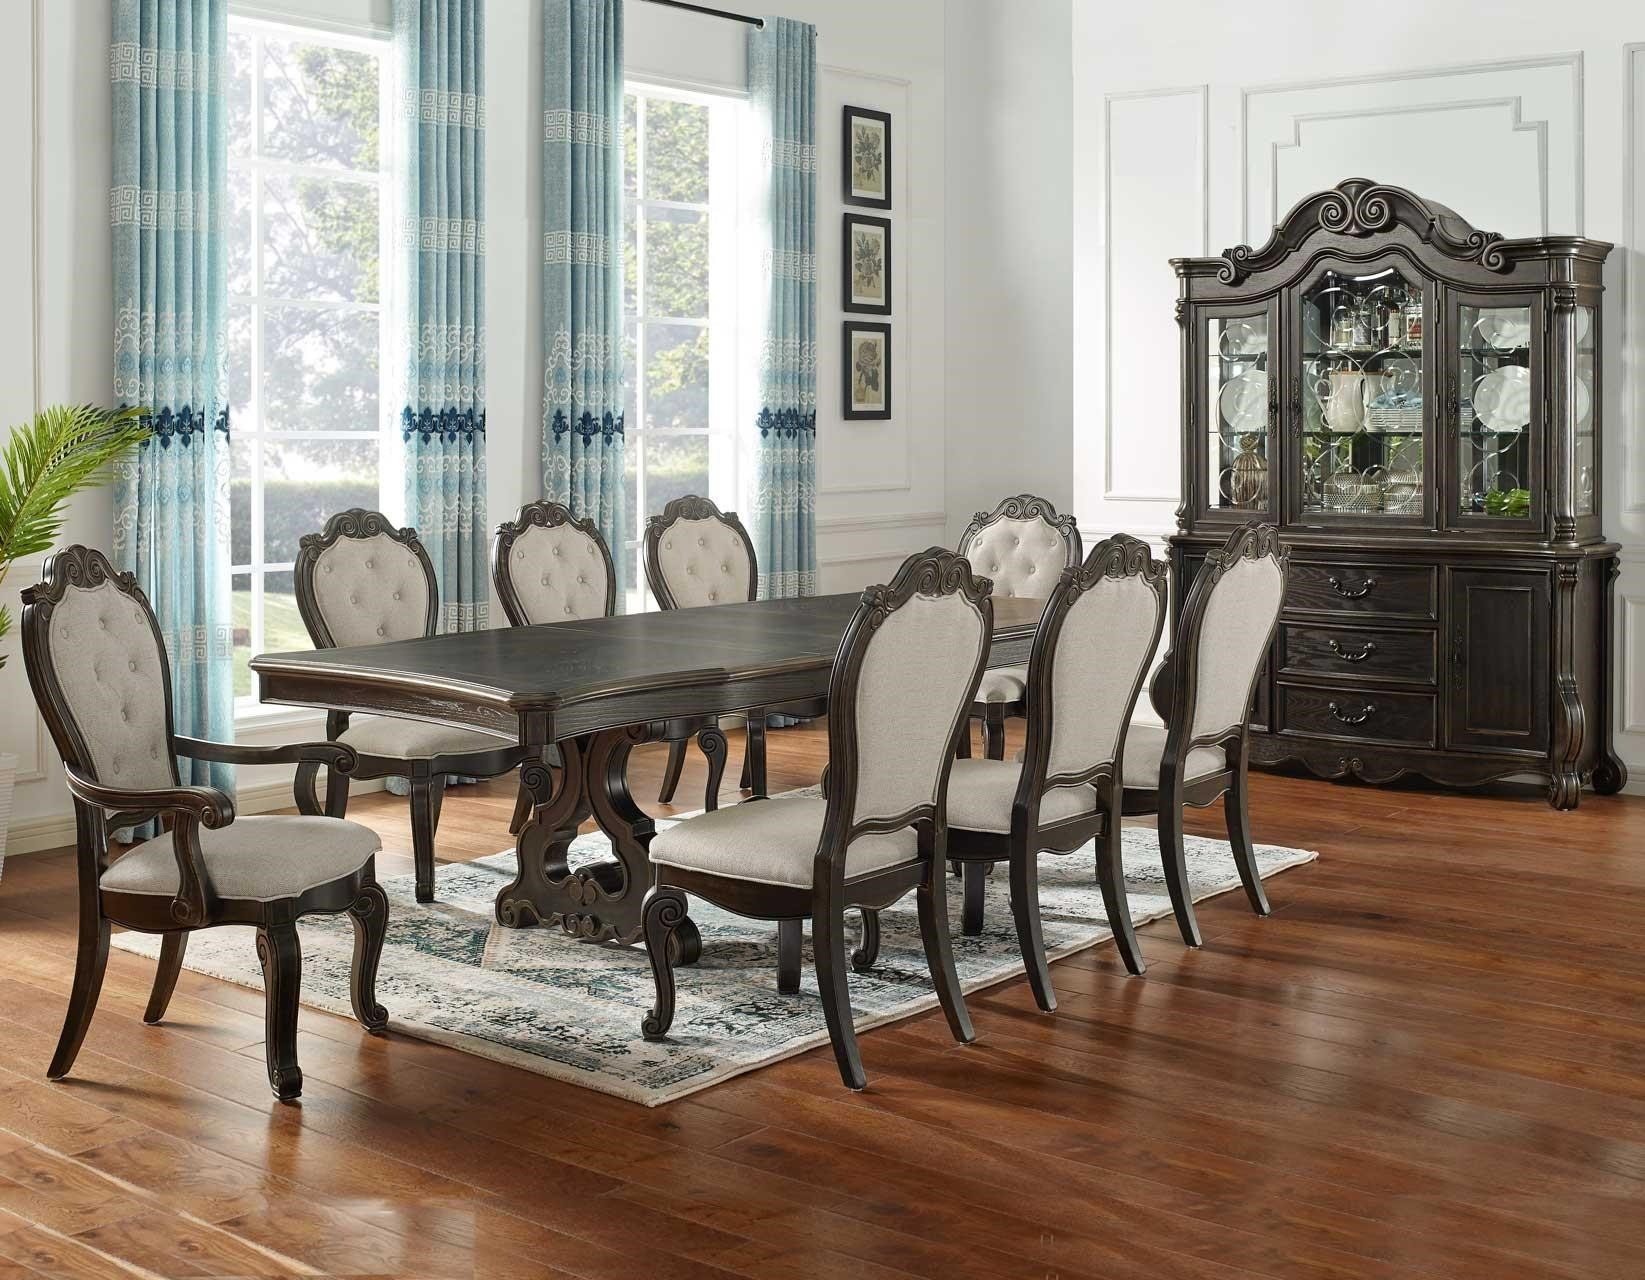 Picture of: Steve Silver Rhapsody Formal Dining Table Seats Up To 10 Royal Furniture Dining Tables